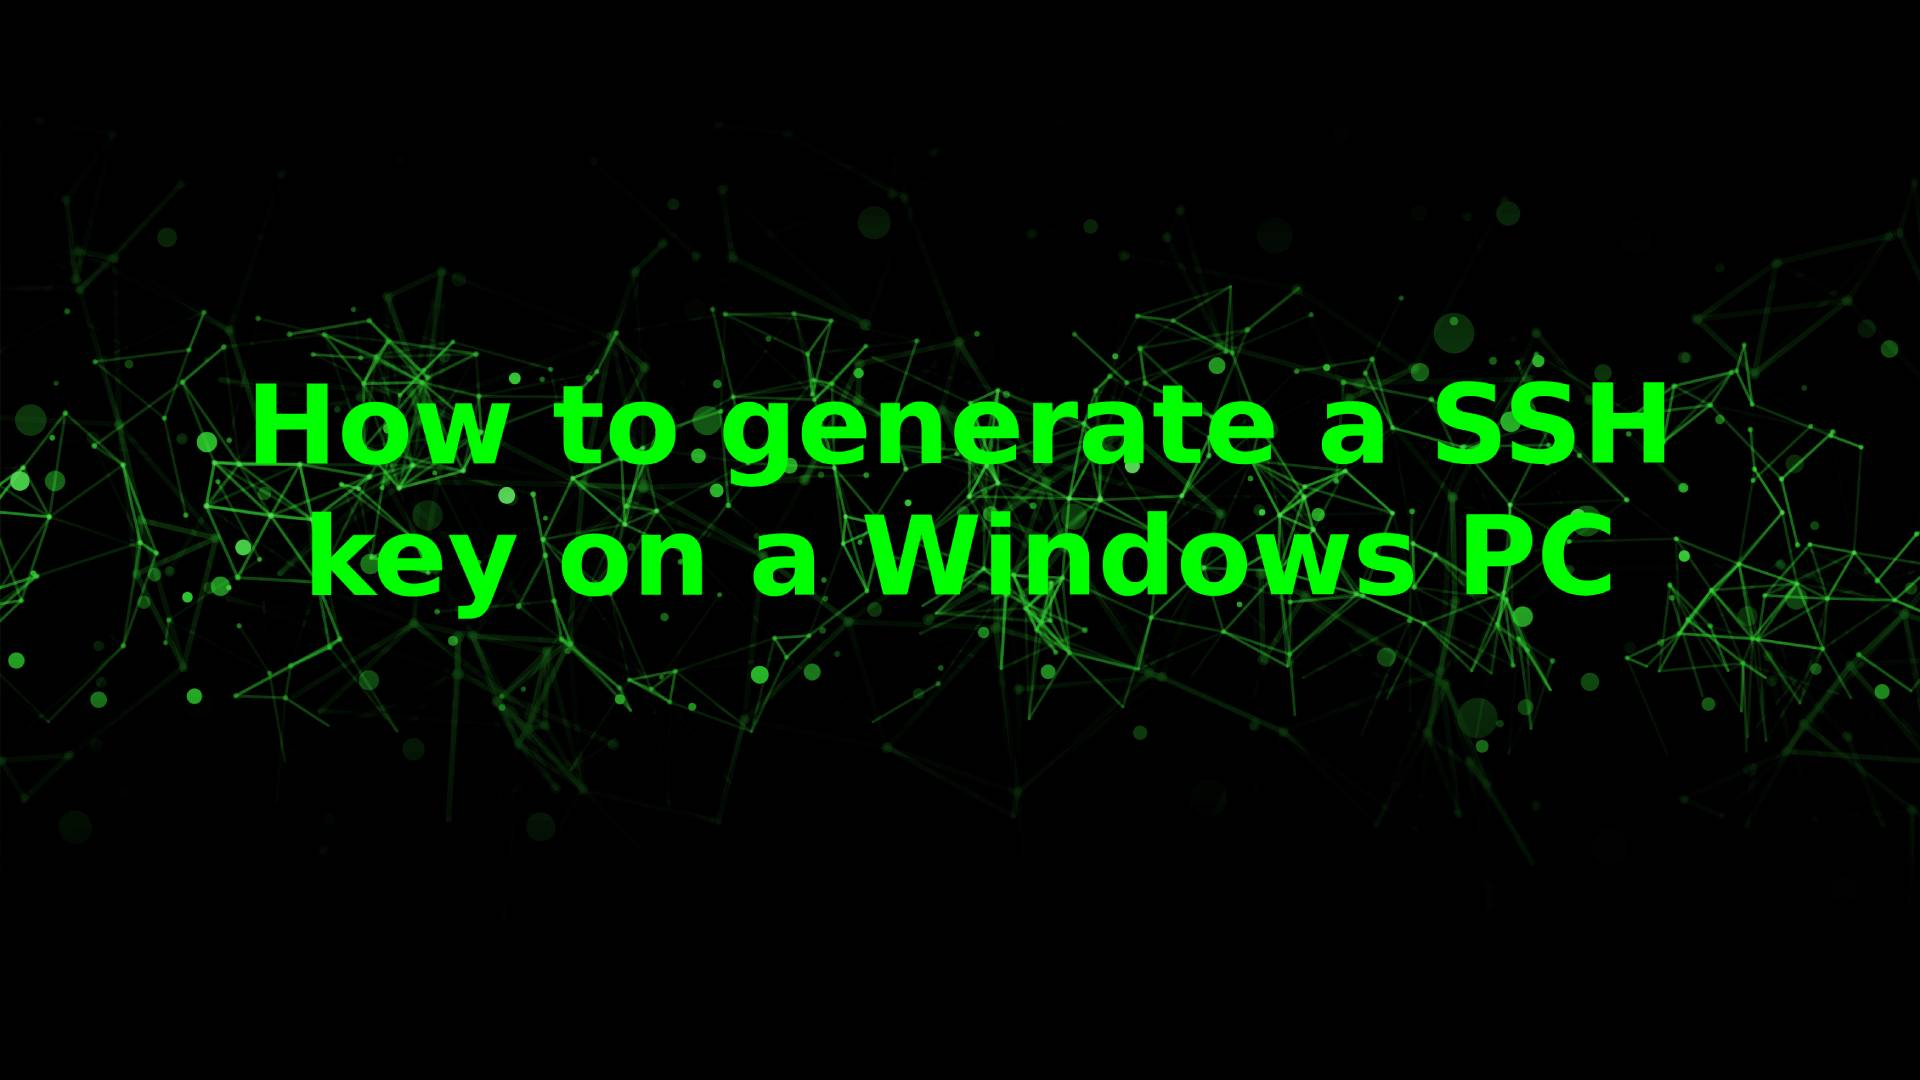 How to generate a SSH key on a windows PC